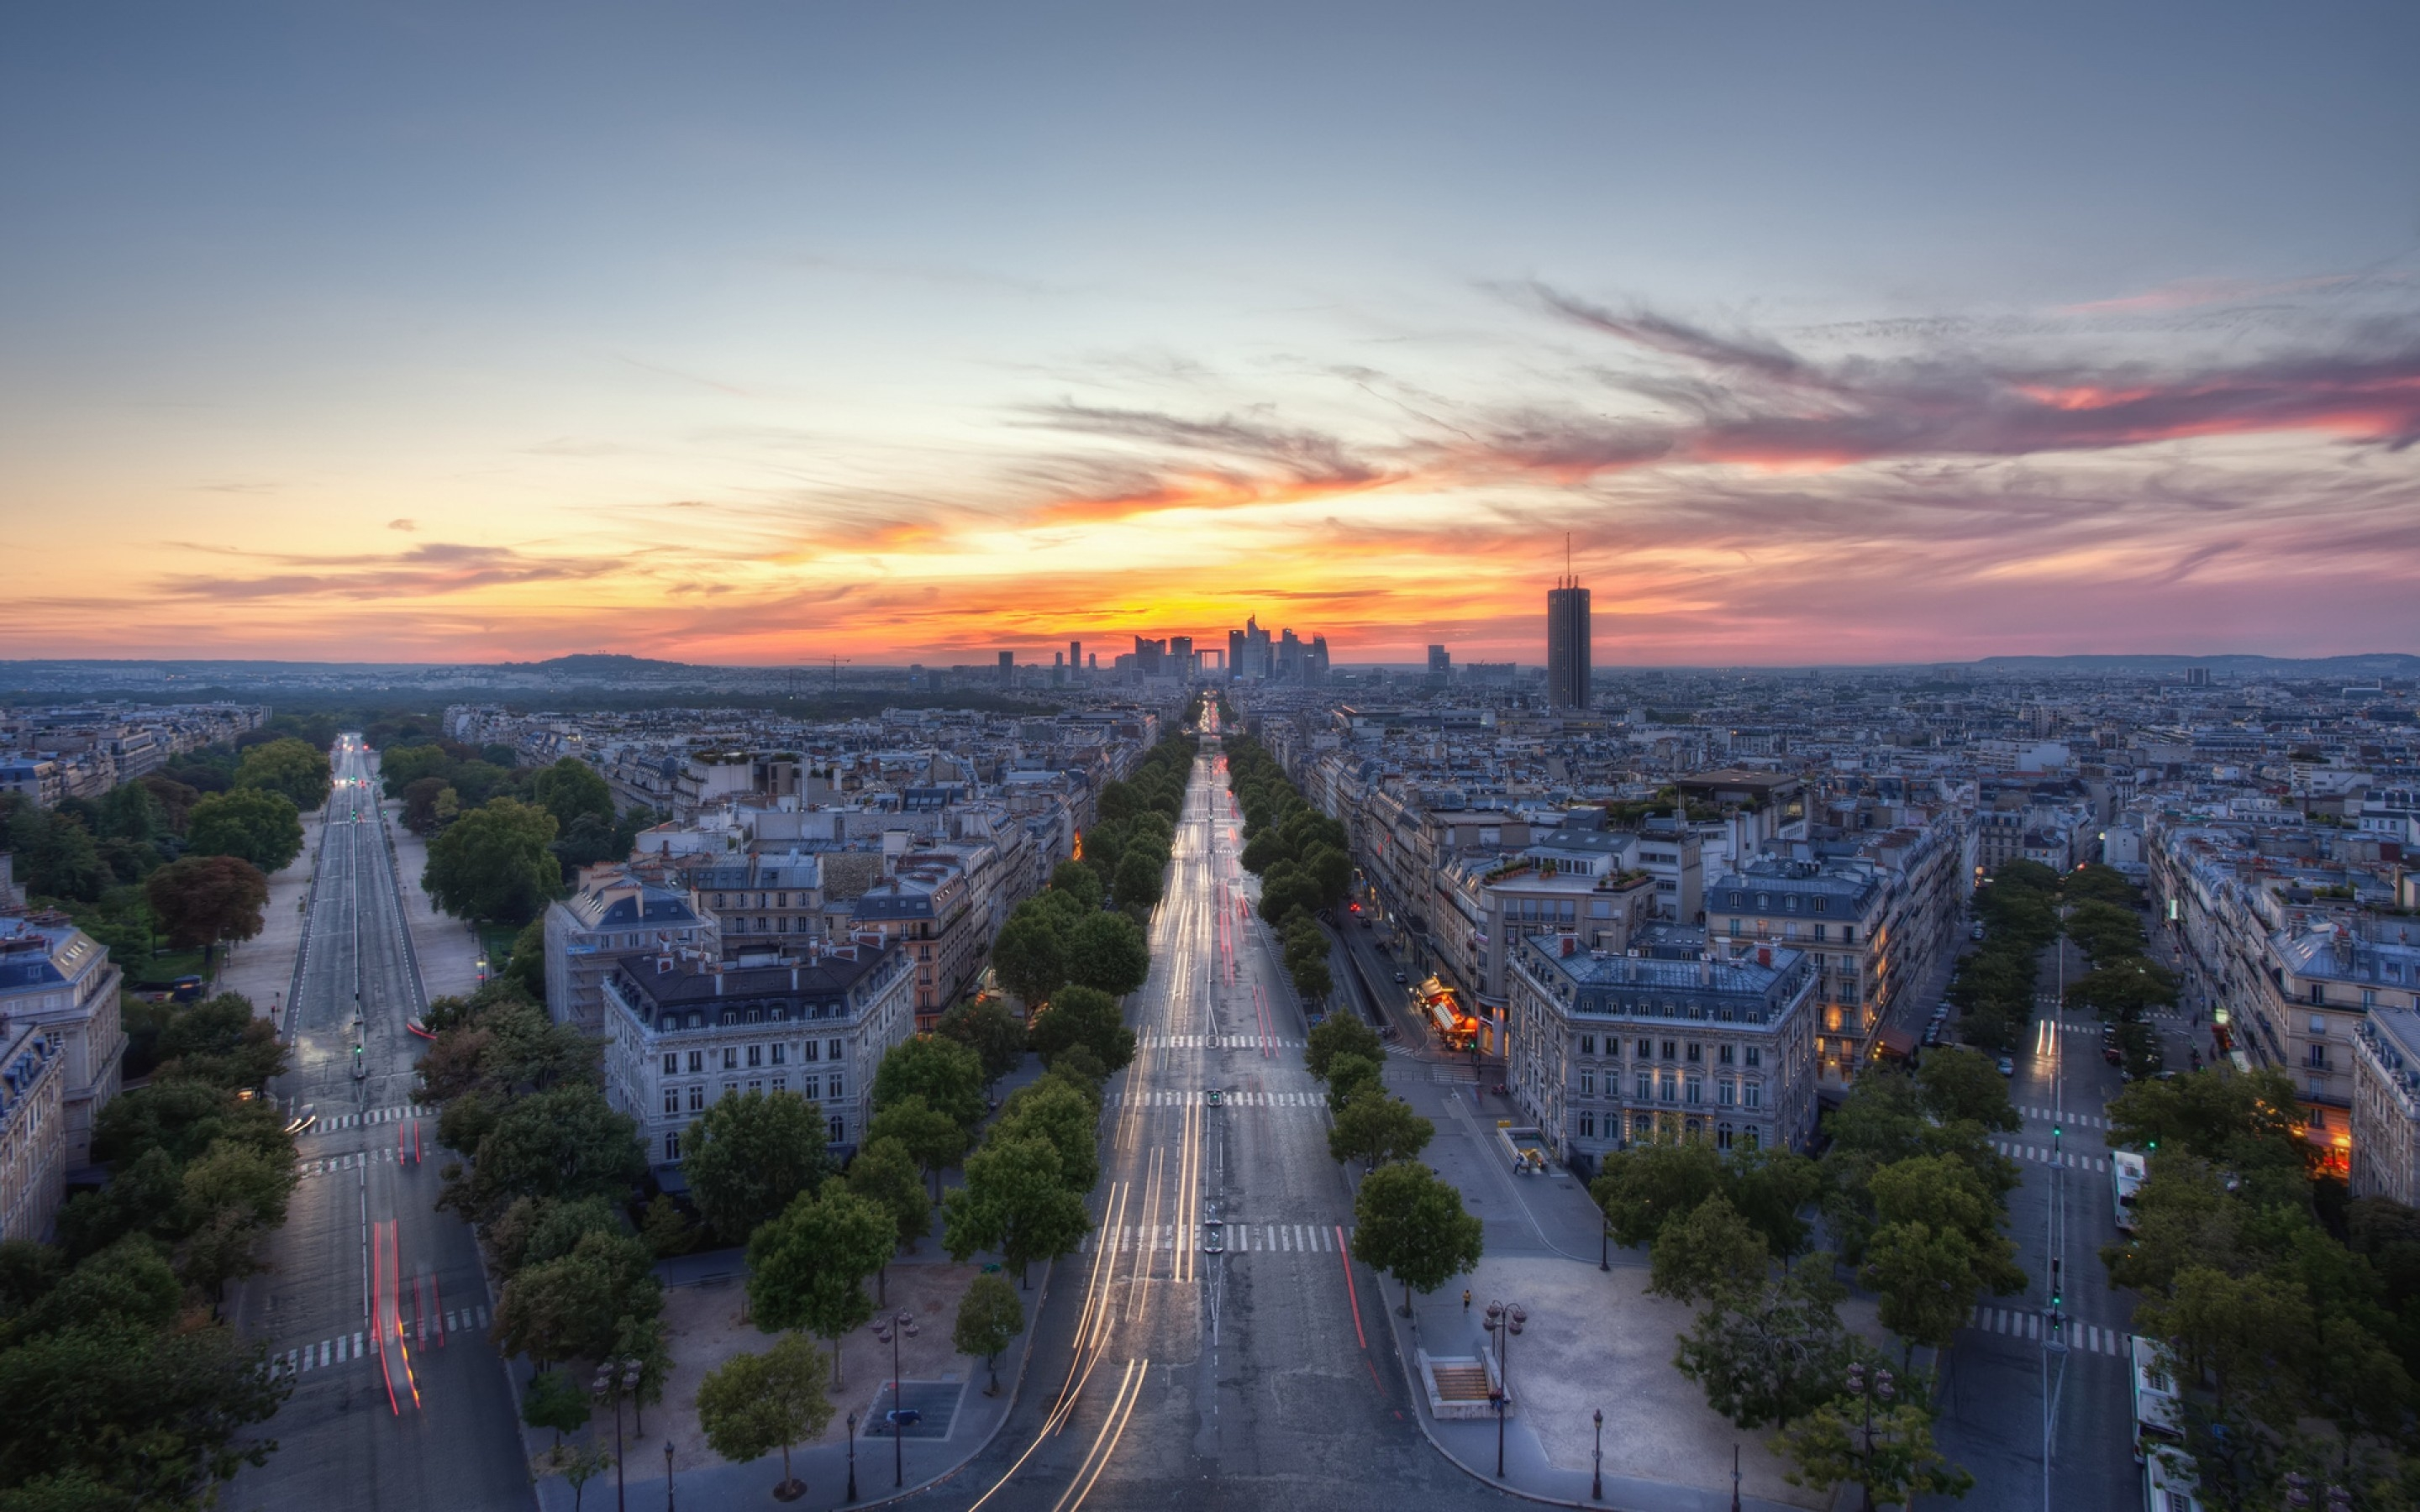 Sunset Paris France Mac Wallpaper Download | Free Mac ...